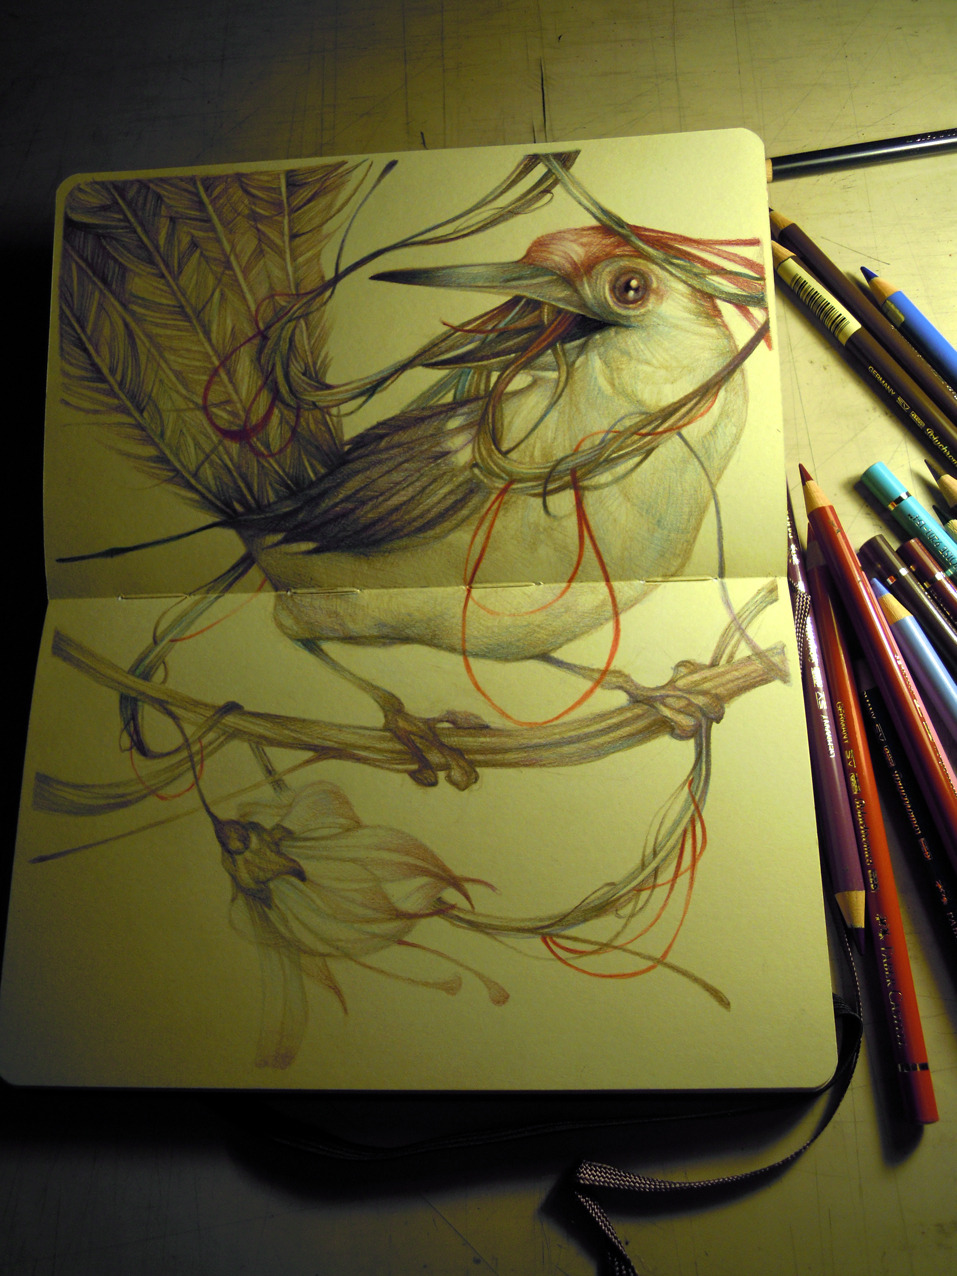 marcomazzoni:  the songwriter bird on moleskine